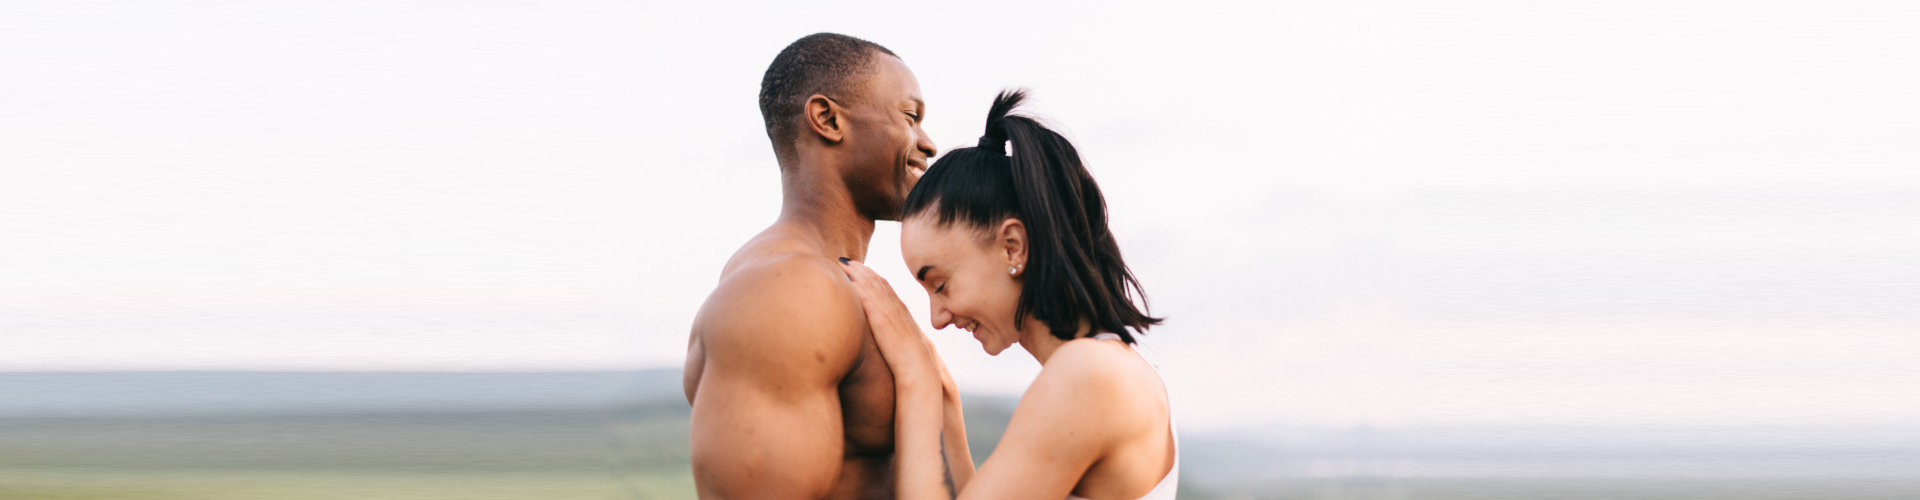 couple softly embracing on mountains